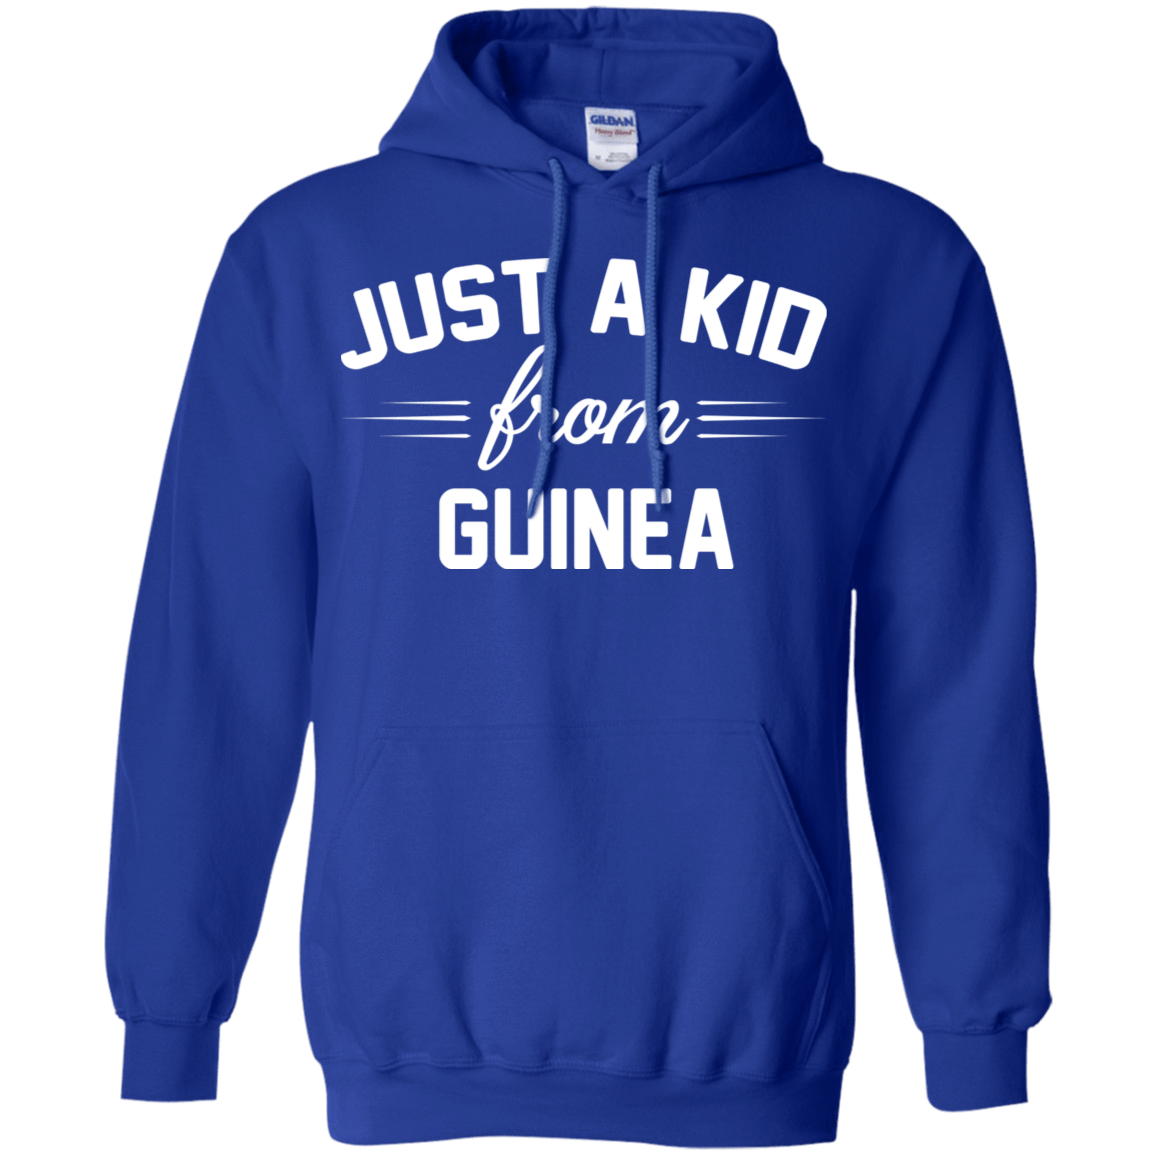 Just a Kid Store | Guinea T-Shirts, Hoodie, Tank 541-4765-72091628-23175 - Tee Ript